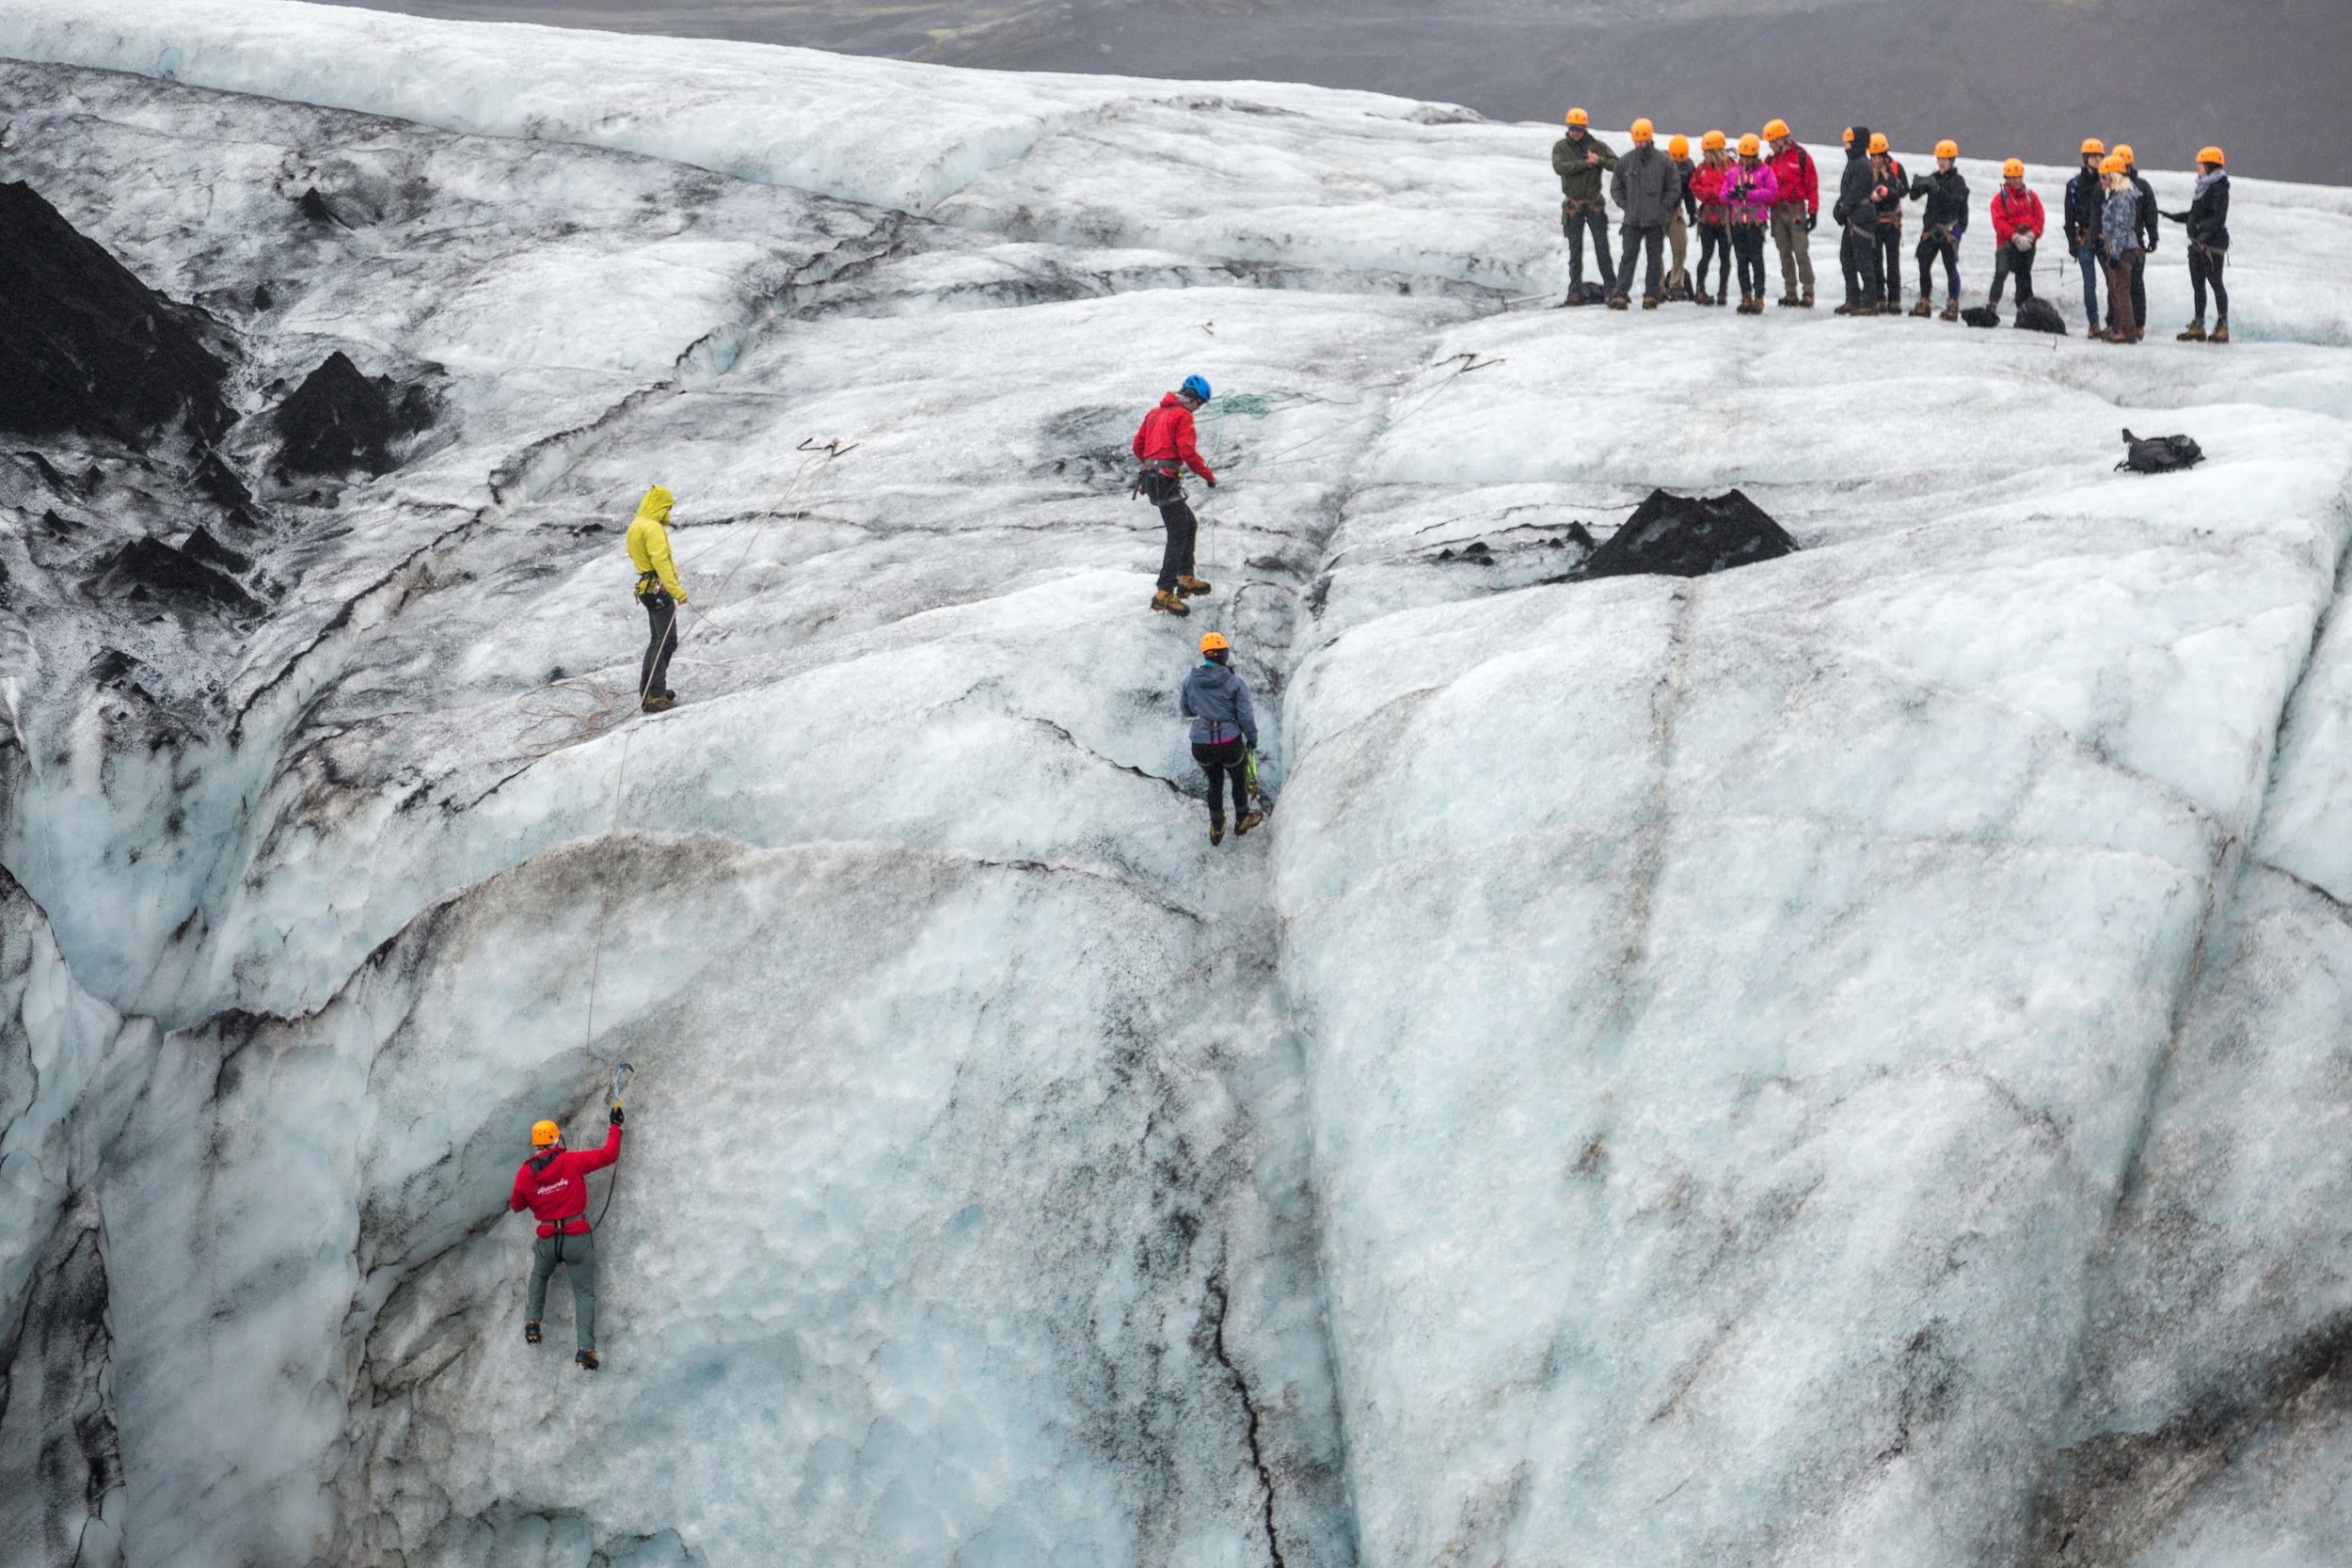 Ice climbing in Iceland….ironic, right?